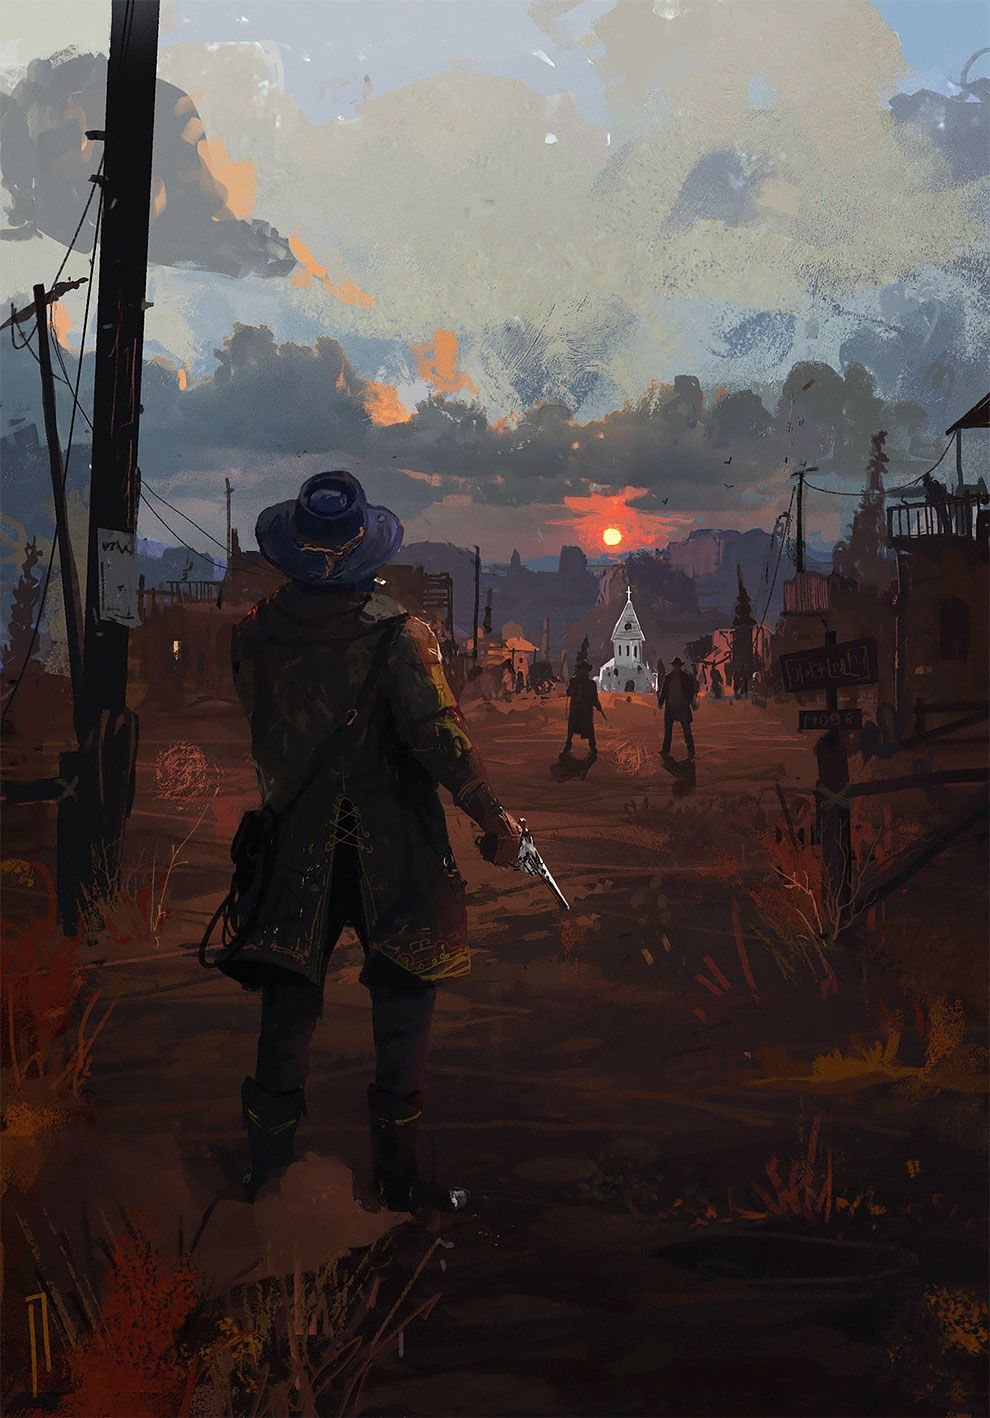 The Longest Journey The Superb Post Apocalyptic And Sci Fi Concept Art By Ismail Inceoglu Red Dead Redemption Artwork Red Dead Redemption Art Red Dead Redemption